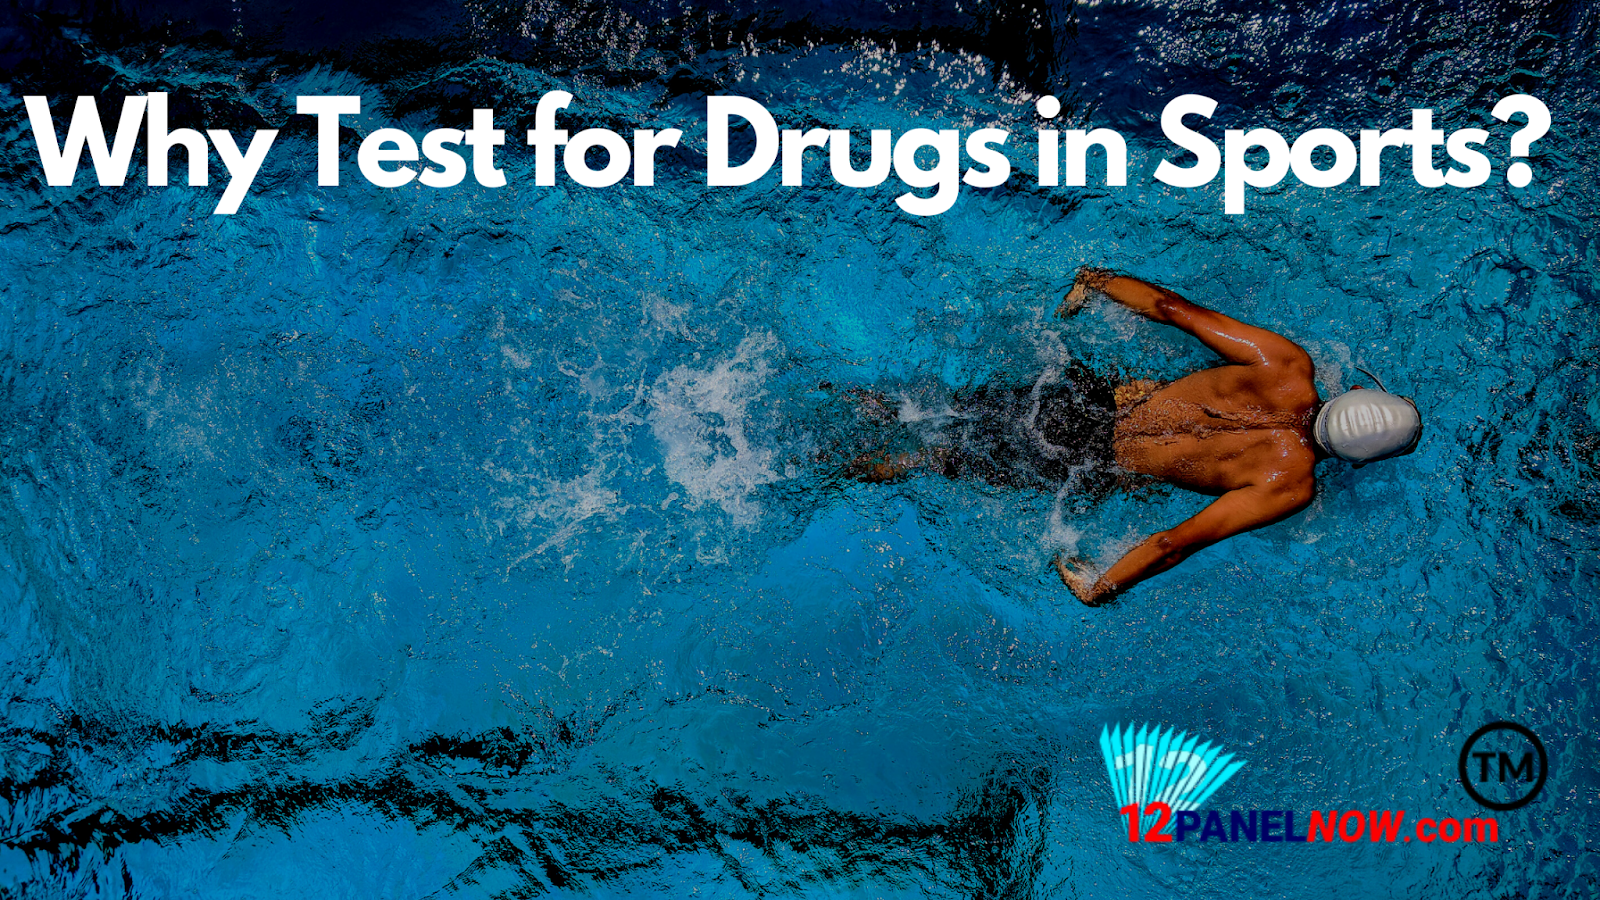 Why Test for Drugs in Sports?